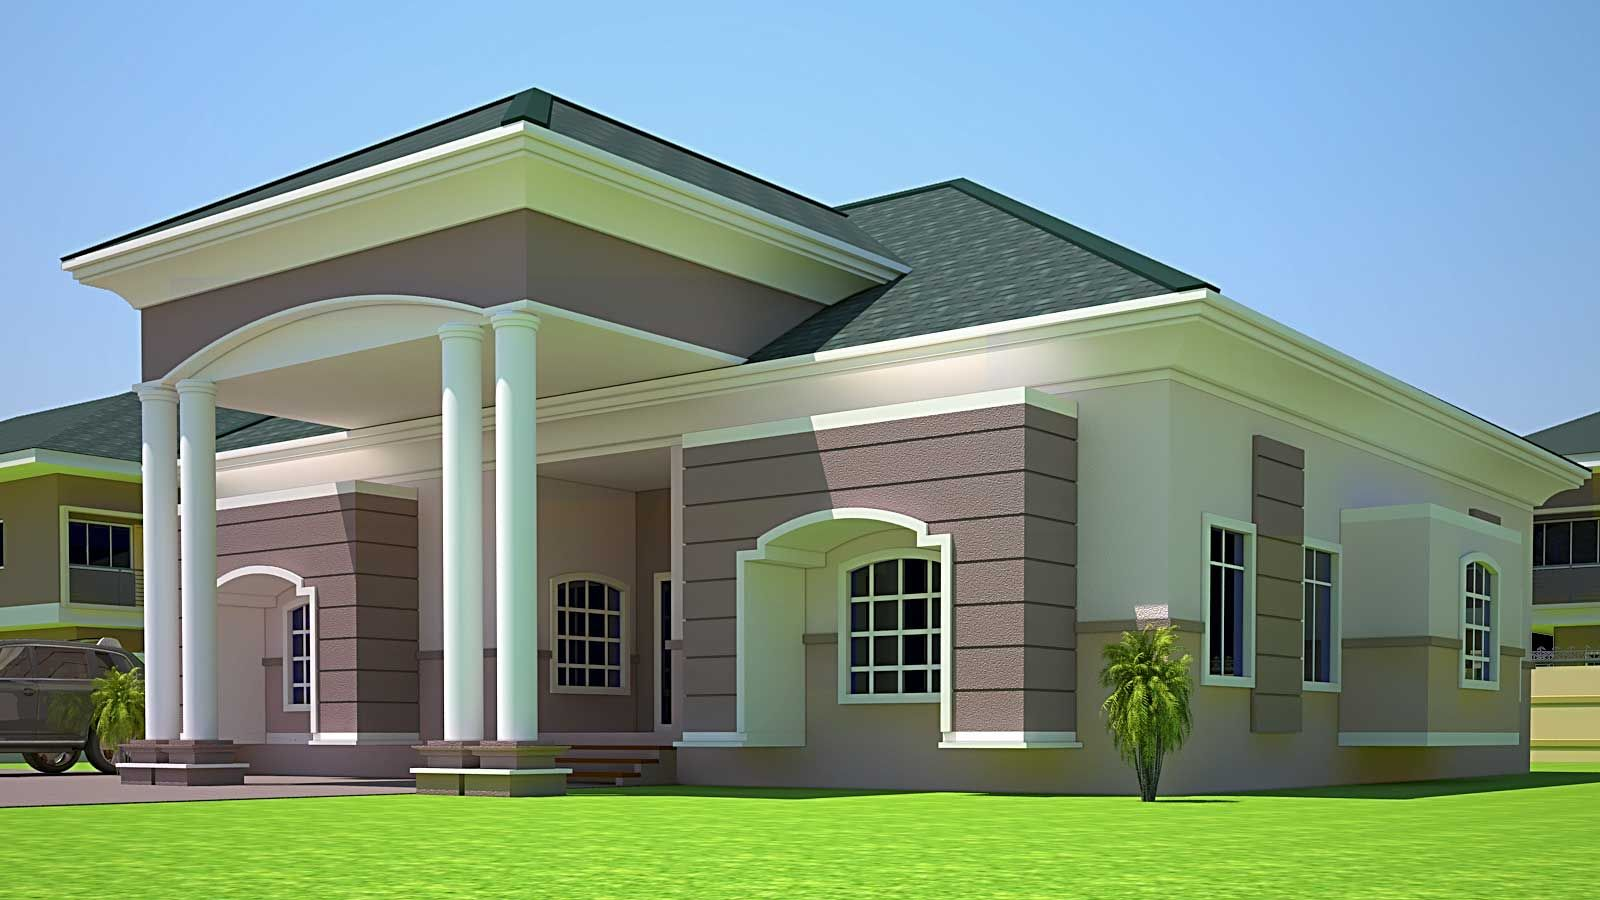 House Plans Ghana Holla Bedroom Plan Elevation With Free Floor